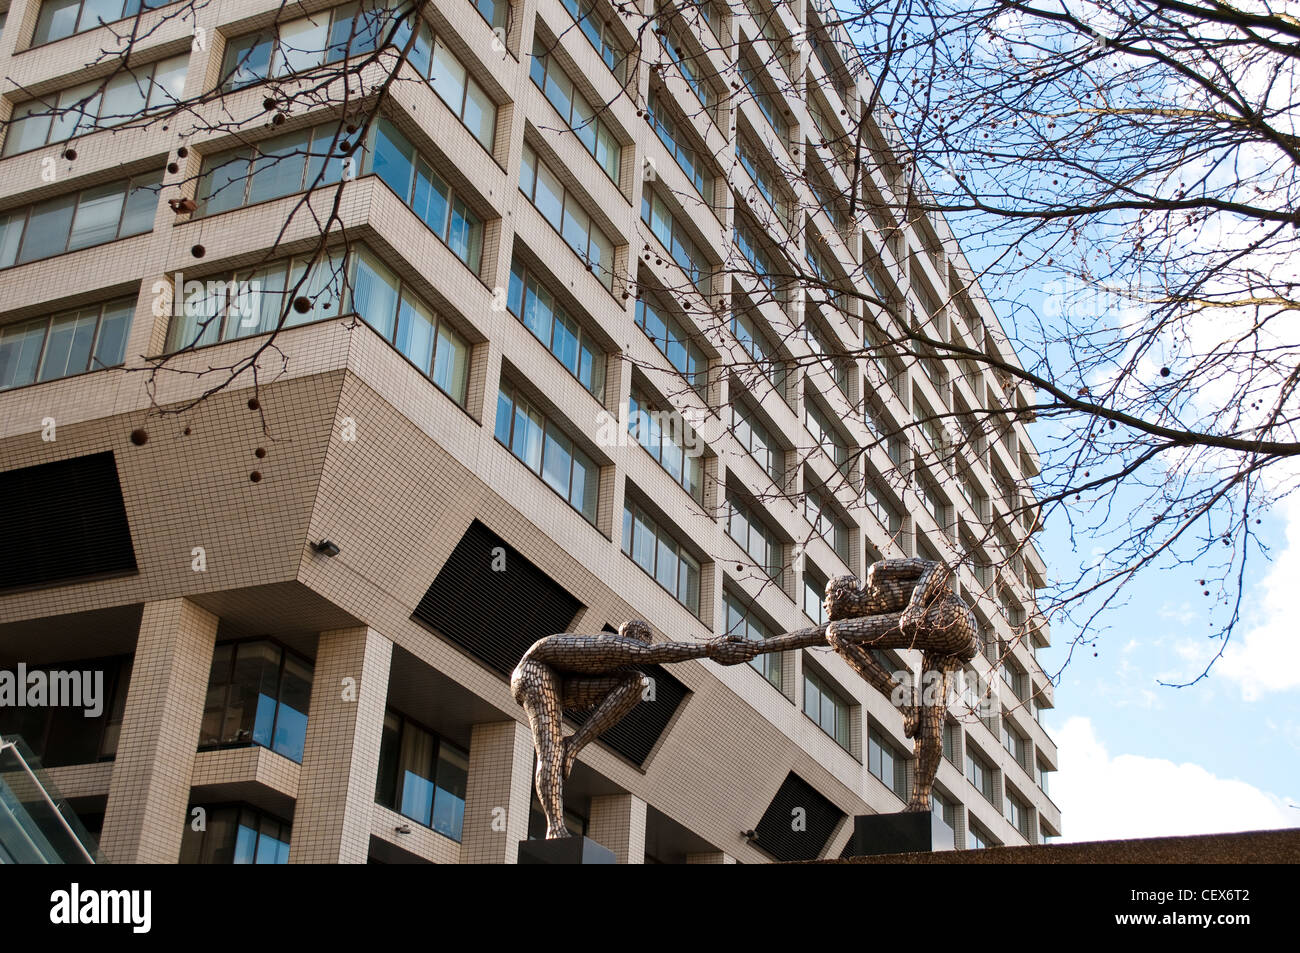 Public sculpture by Rick Kirby 'Cross the Divide', at St Thomas' Hospital, London, UK - Stock Image